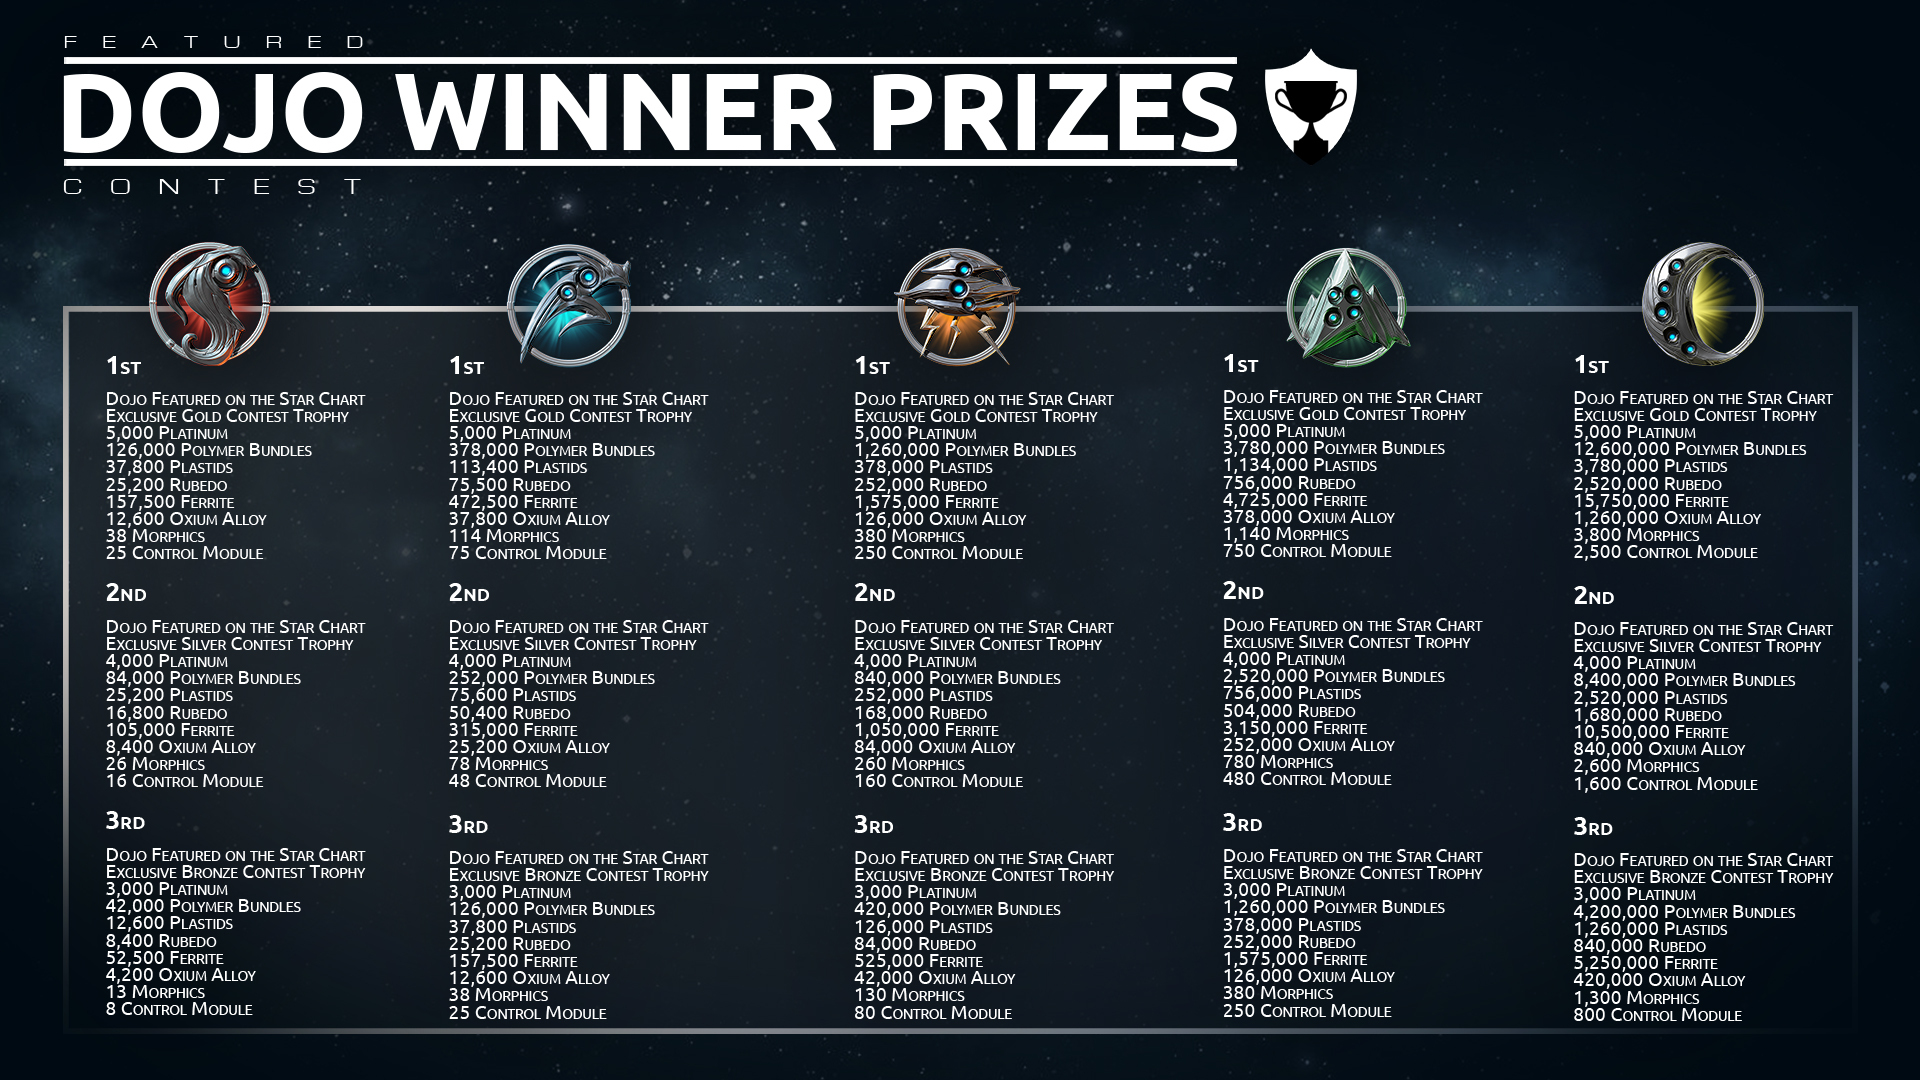 FeaturedDojo_1080p_Prizes_V1_3.jpg